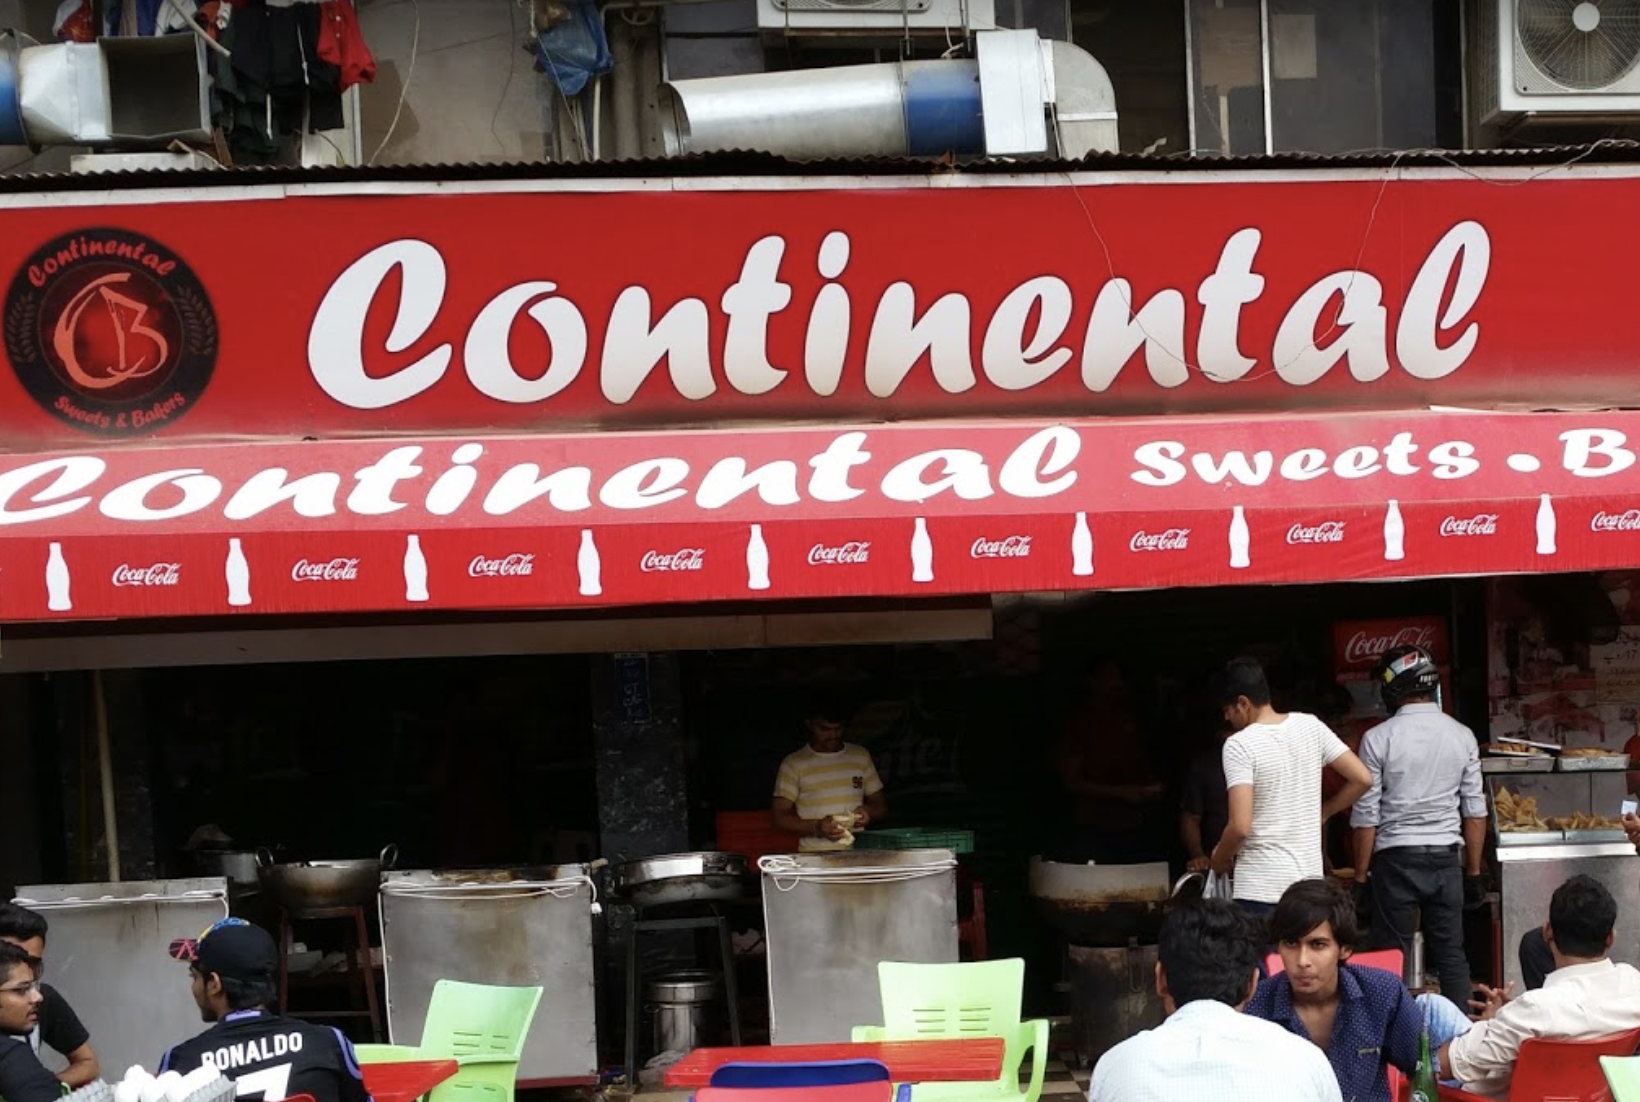 Continental Sweets & Bakers